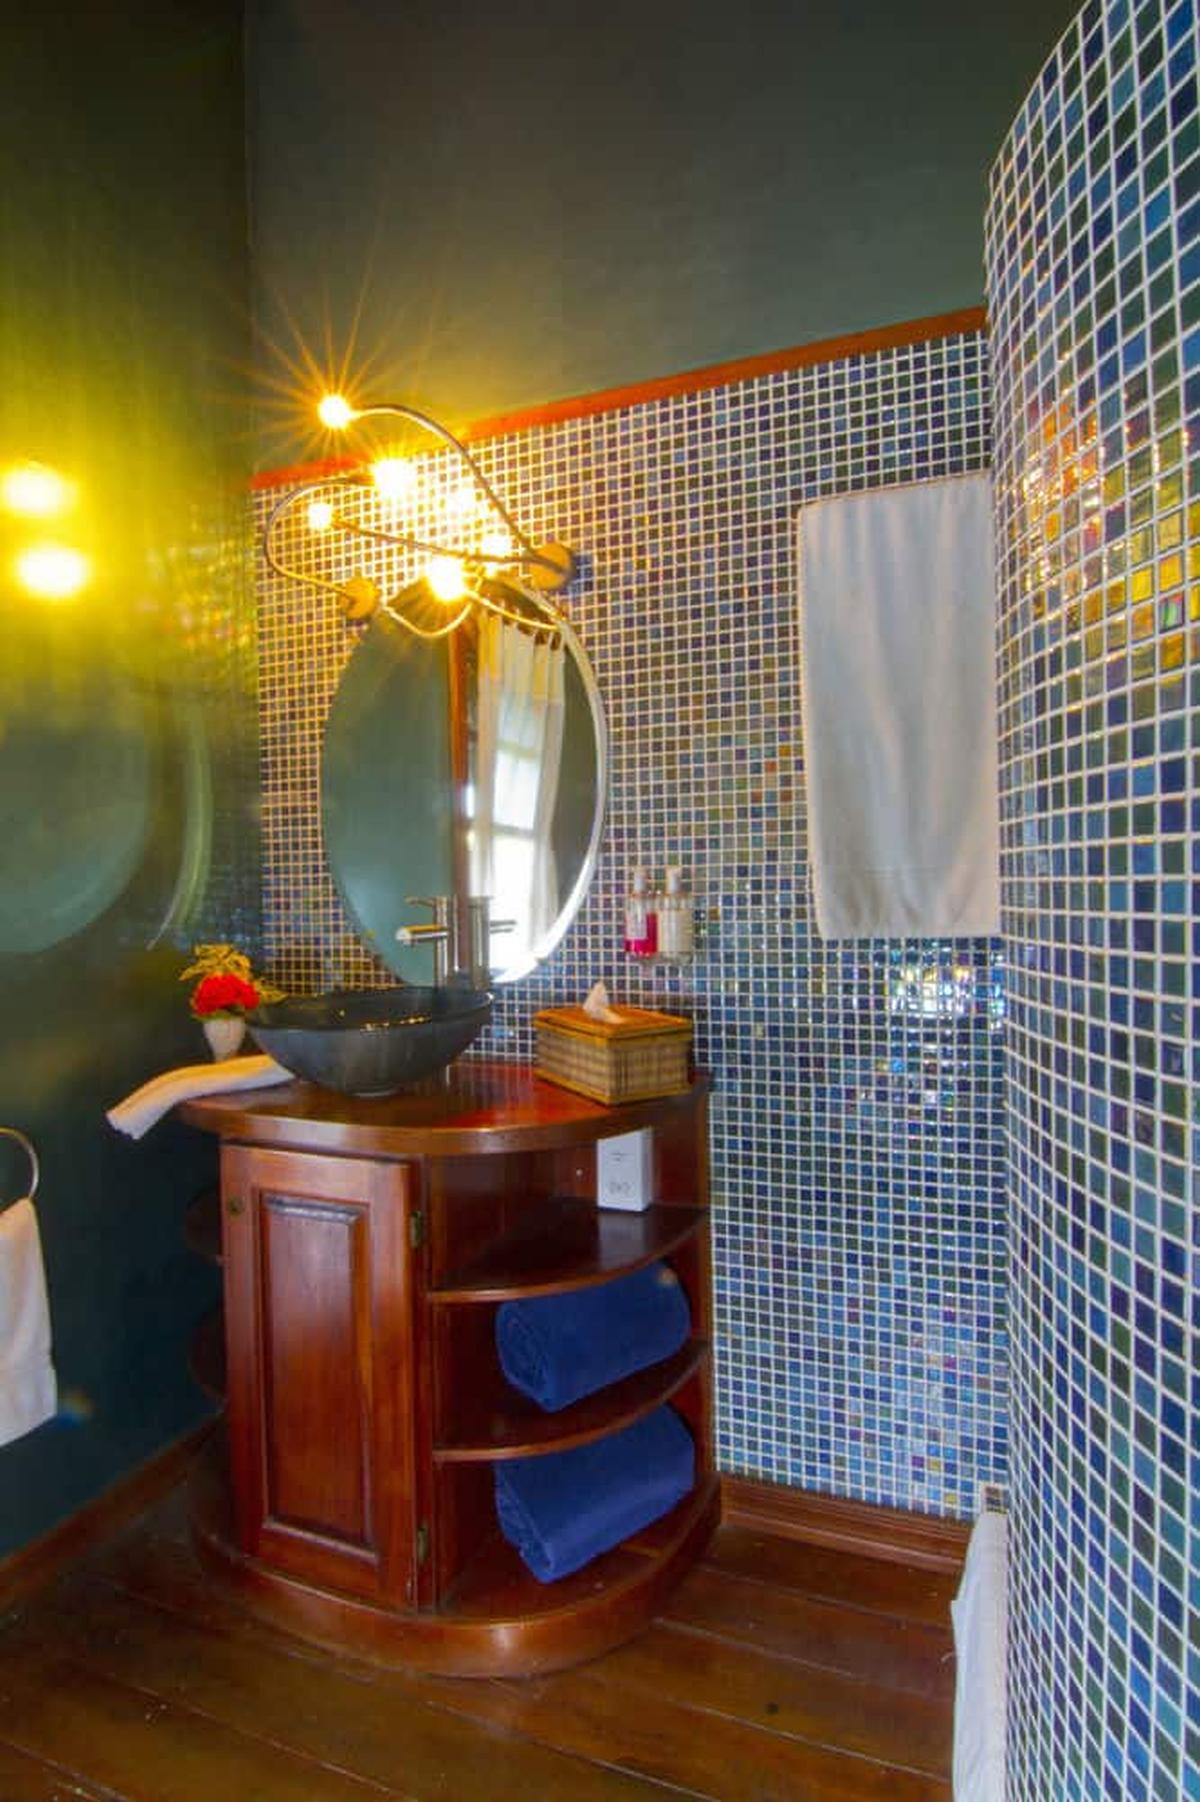 content/hotel/Grenada hotelek/Le Phare Bleu Marina and Boutique Hotel/Accommodation/One Bedroom Upper Floor Apartment/lepharebleumarinaandboutiquehotel-acc-onebedroomupperfloorapartment-03.jpg